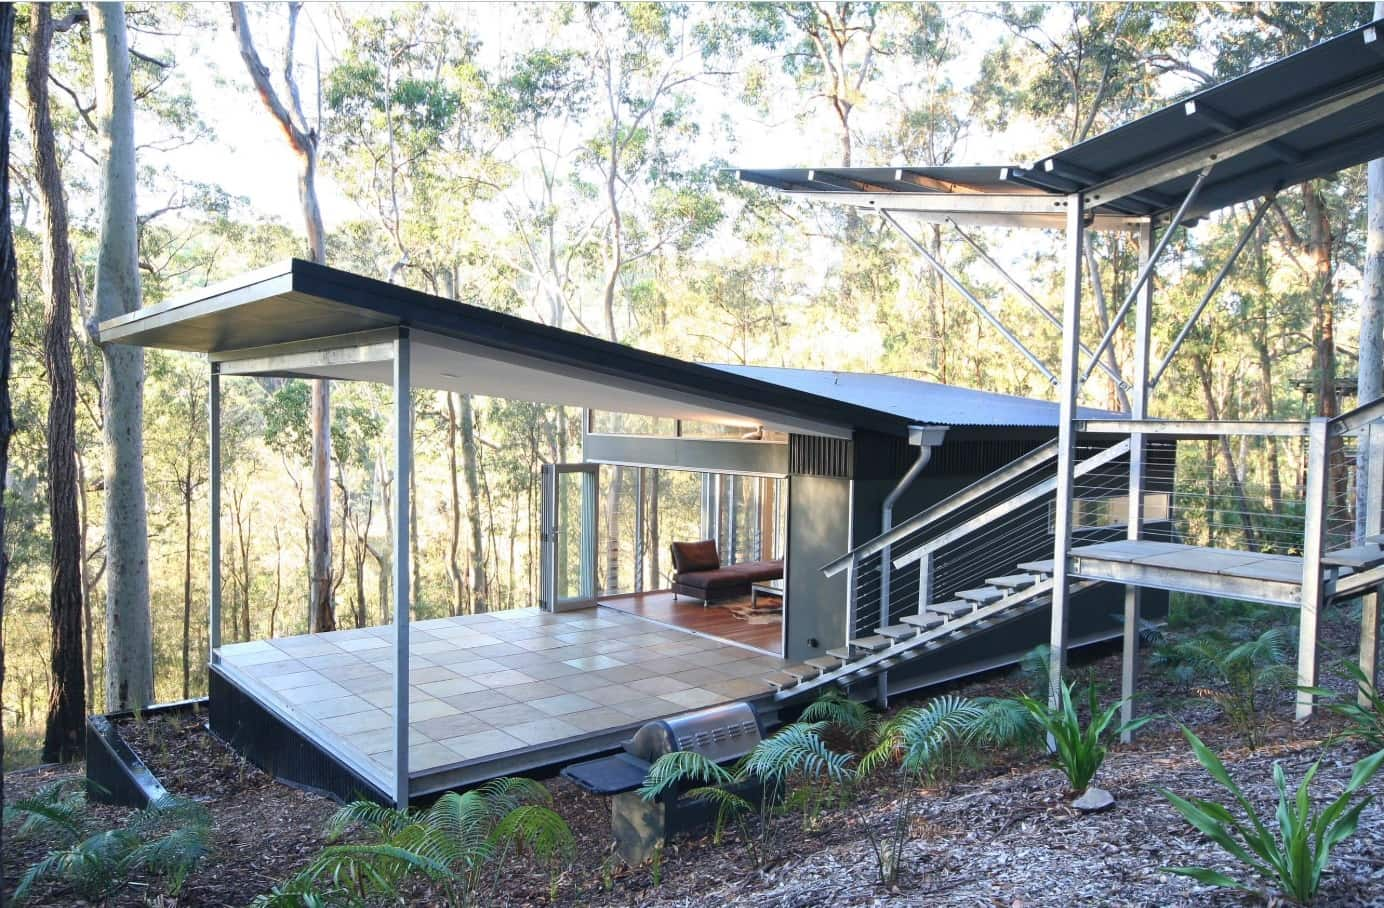 Metal and wood are great choice for sustainable house